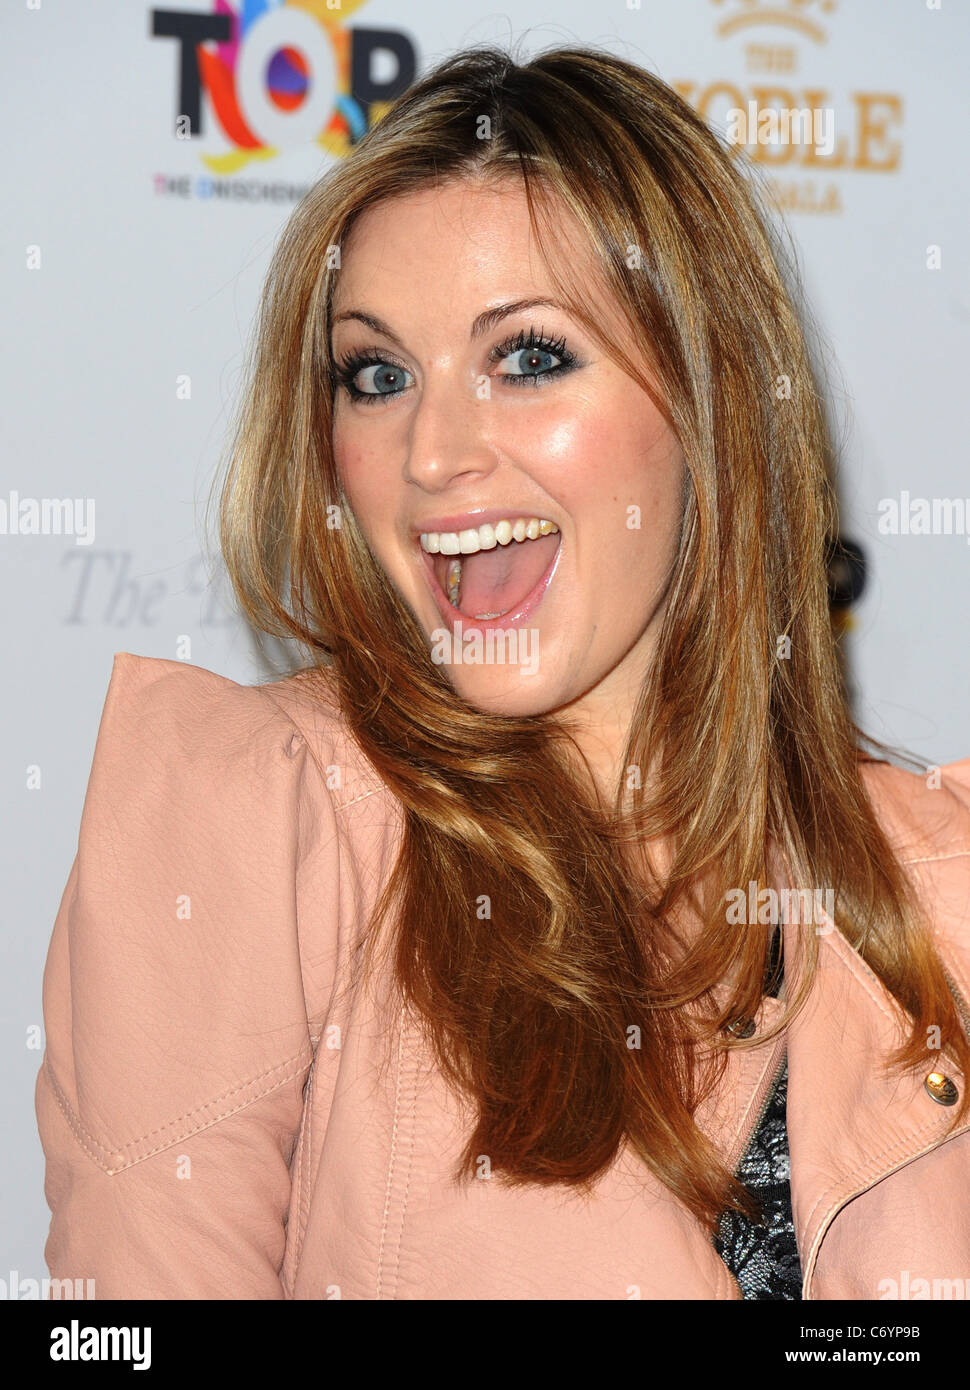 Olivia Lee The Noble Gift Gala held at The Dorchester - Arrivals London, England - 13.03.10 - Stock Image